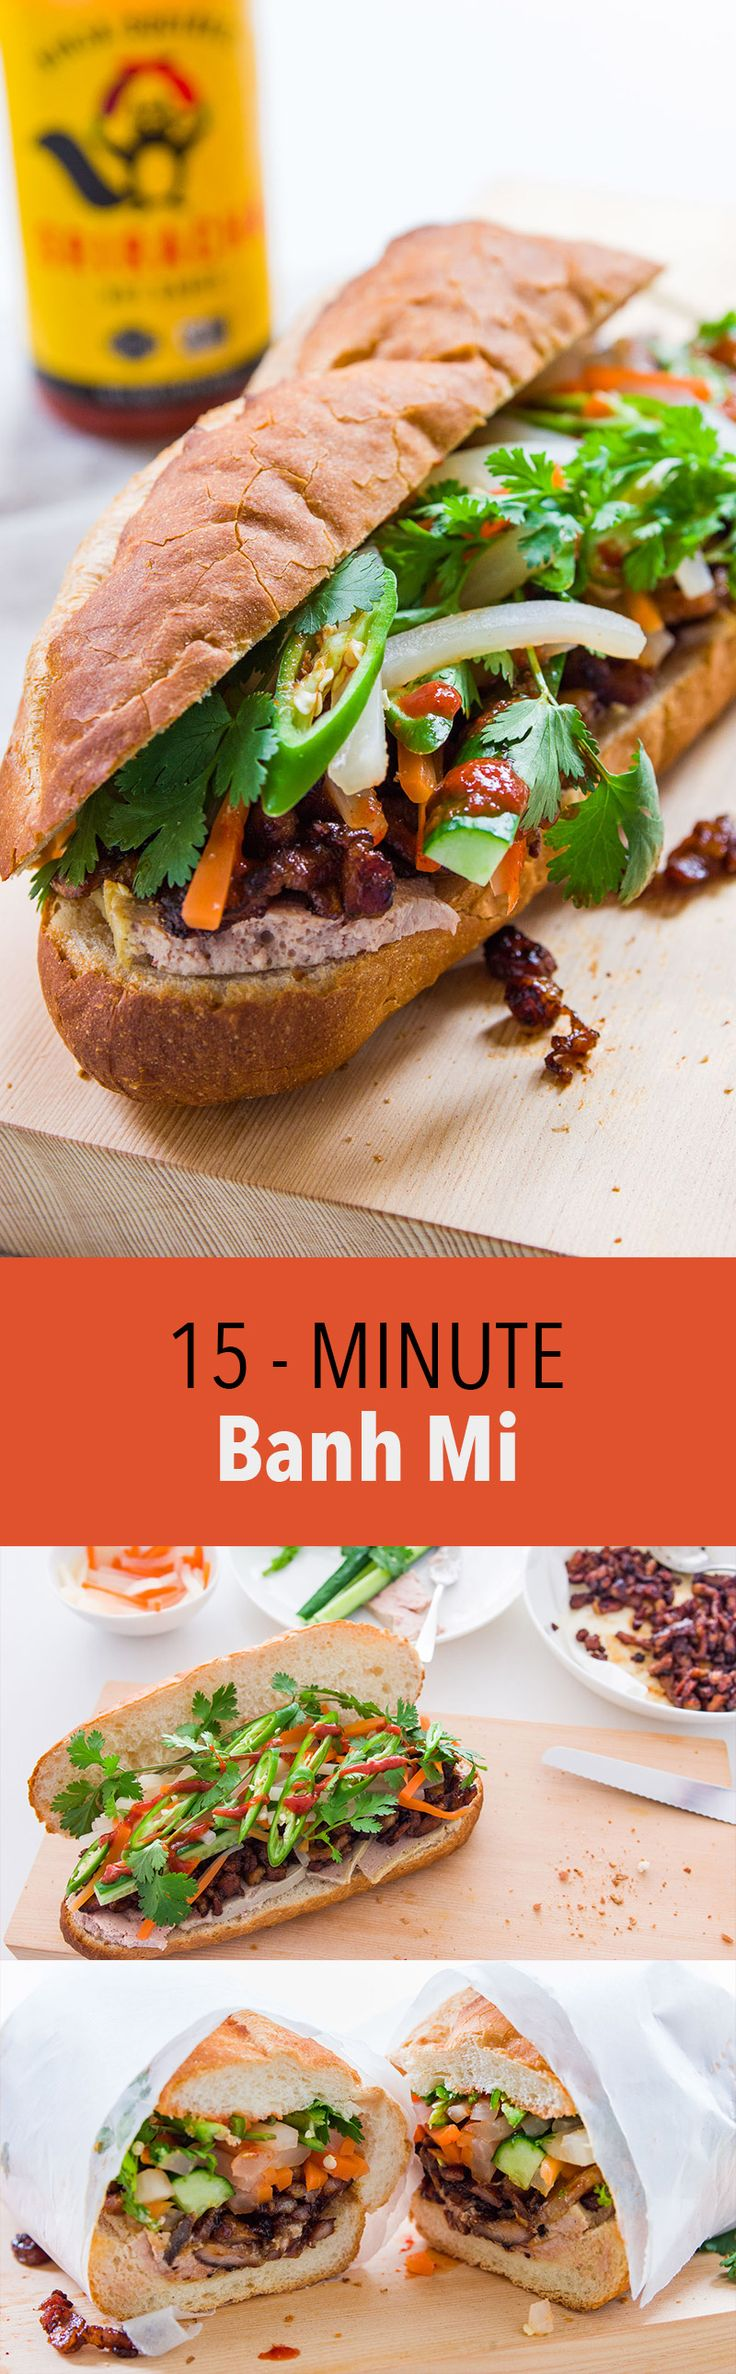 Easy Bánh Mì Thịt Xá Xíu with pickled vegetables, chiles, cilantro and a quick stove-top char siu (Chinese barbecued pork).